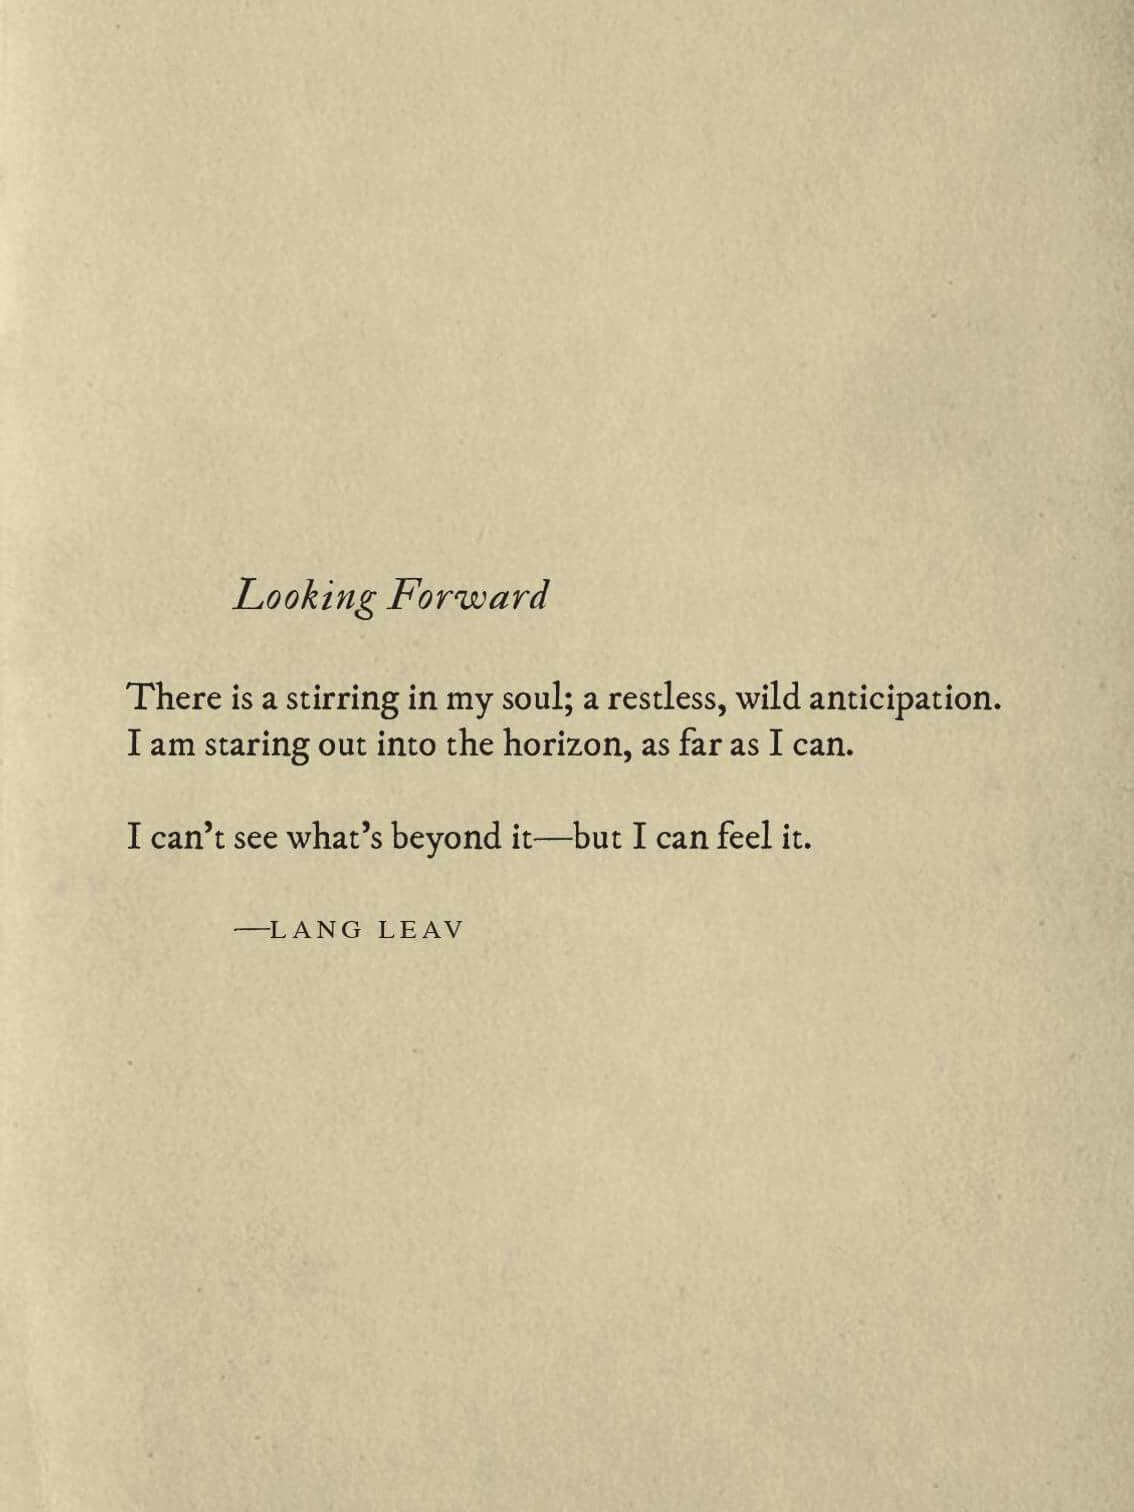 Looking Forward Langleav Words Pinterest Quotes Looking